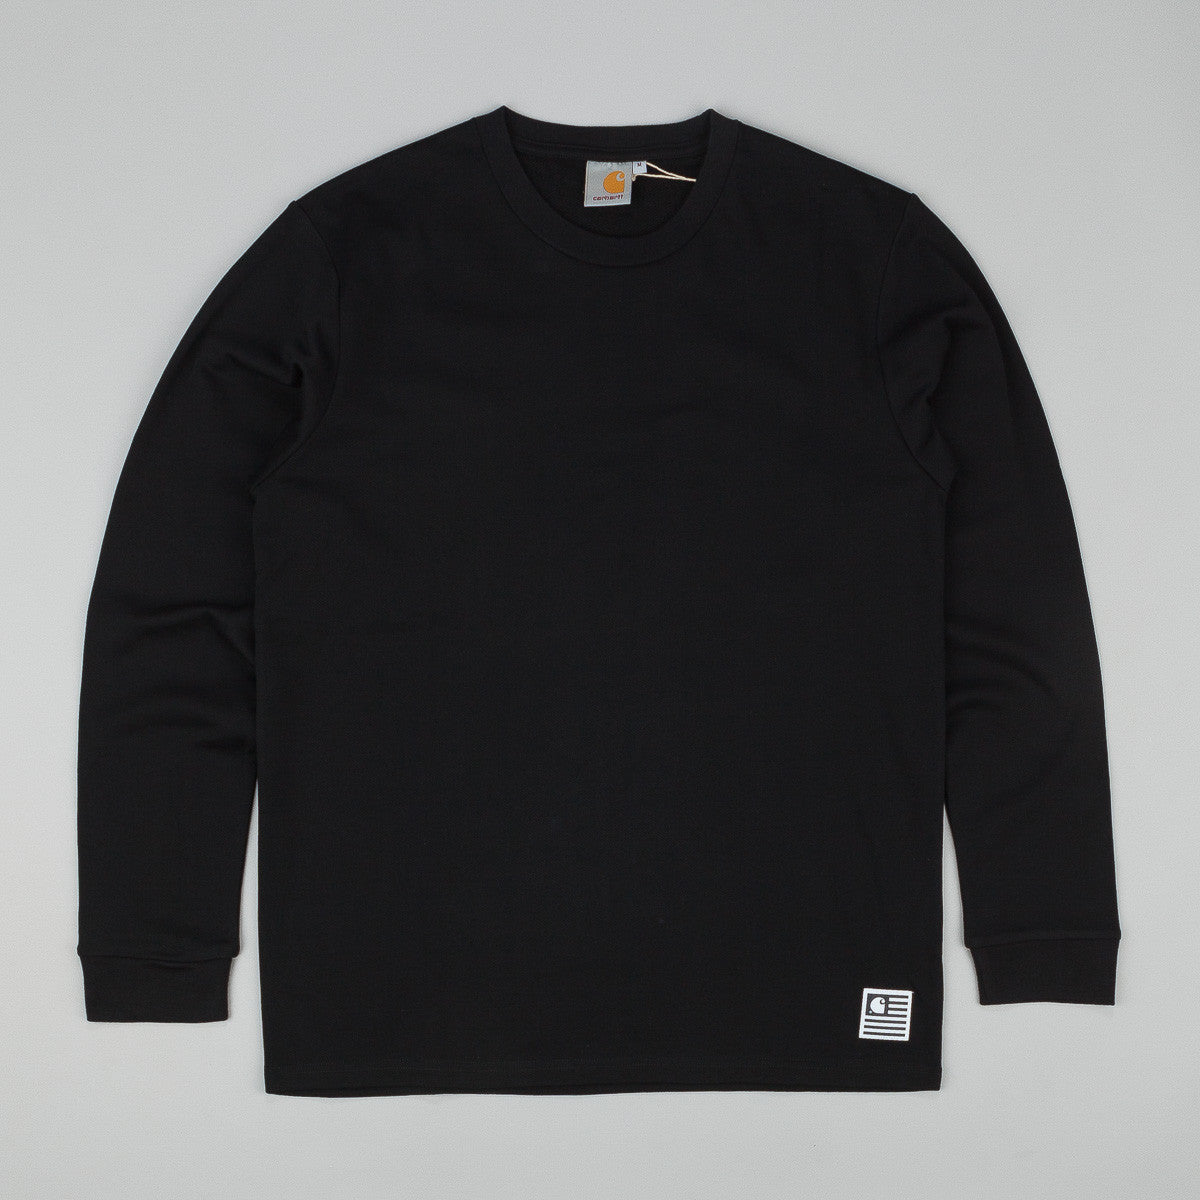 Carhartt State Campus L/S T-Shirt - Black / White